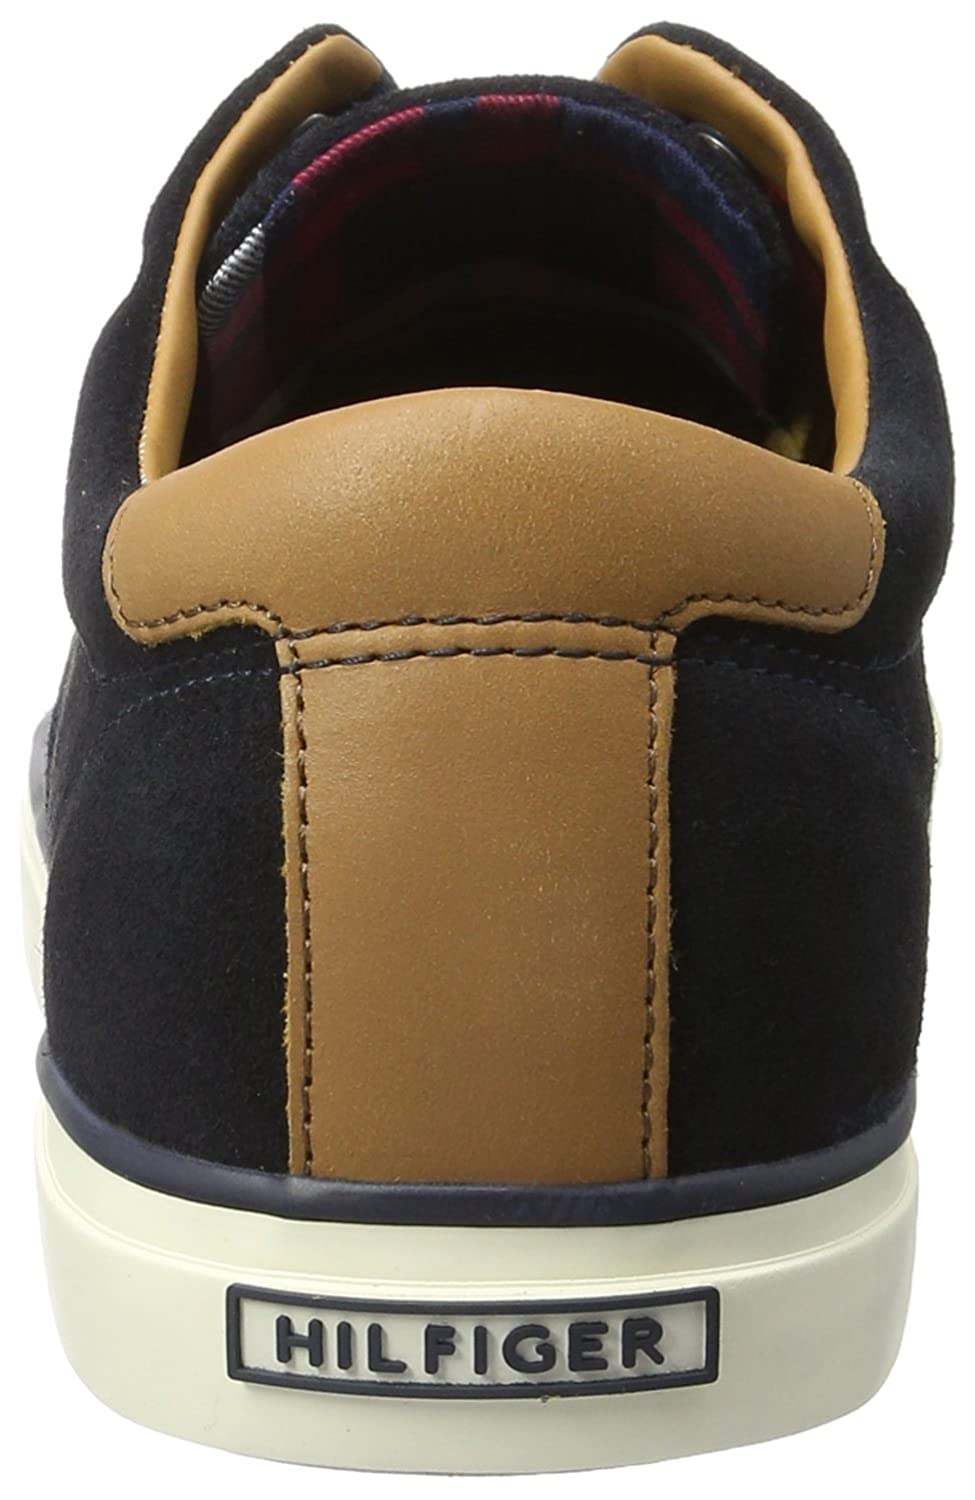 Tommy Hilfiger Men's W2285ilkes 2b Low-Top Sneakers: Amazon.co.uk: Shoes &  Bags